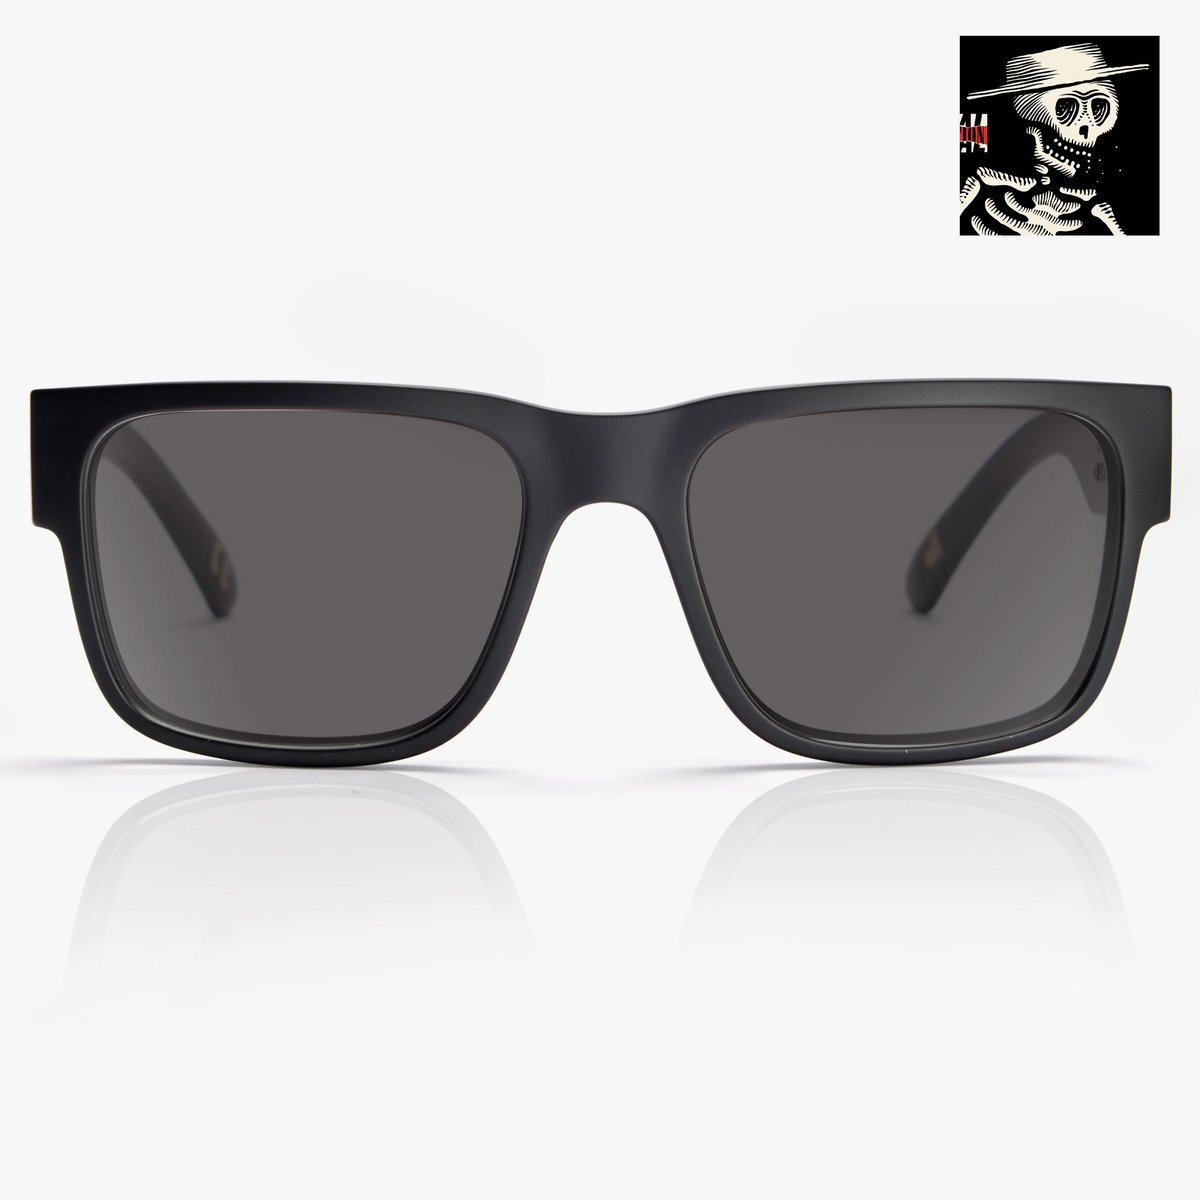 Strut Social Distortion Rx Sunglasses